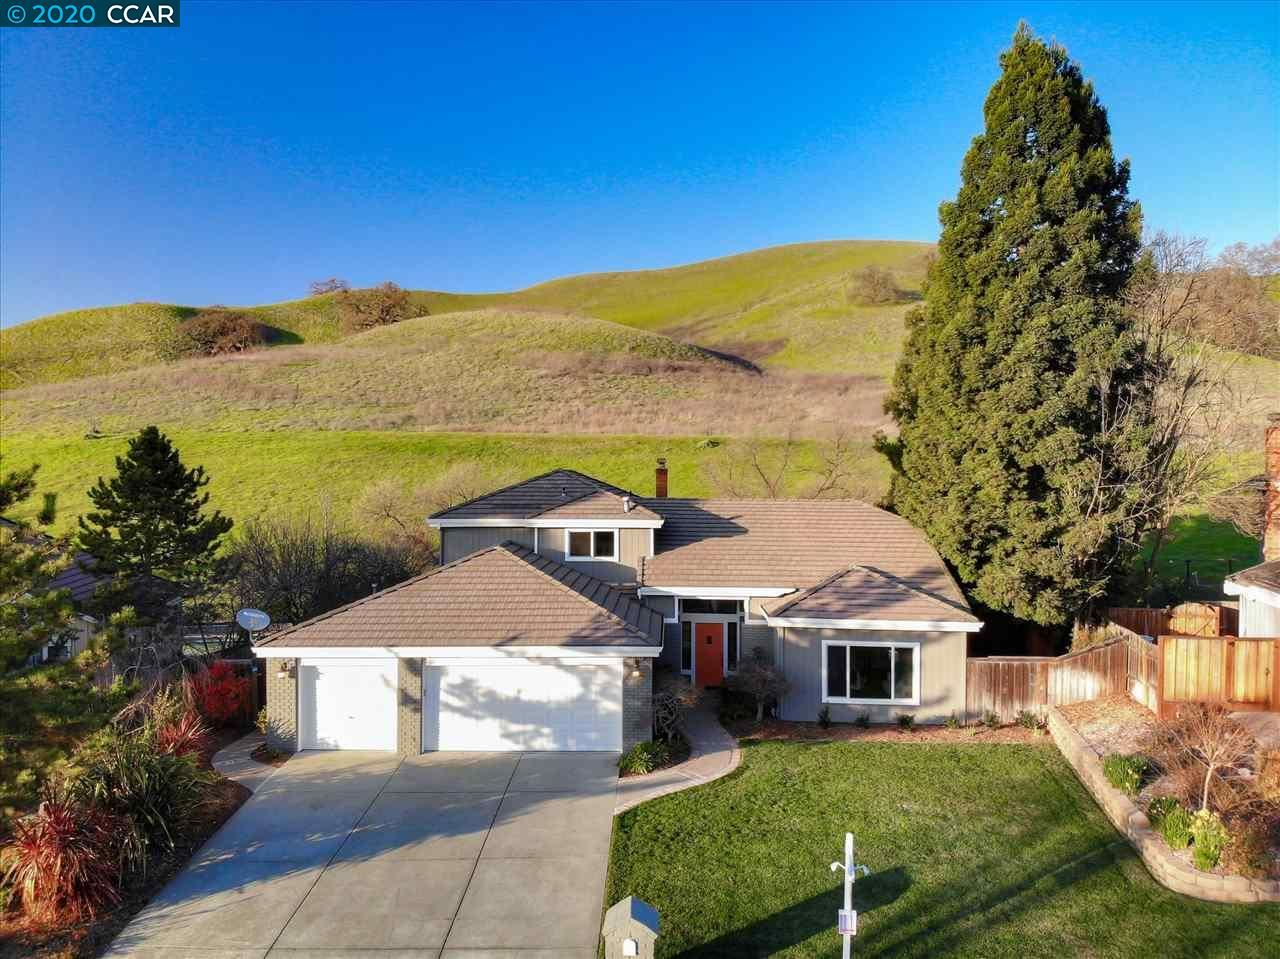 Photo for 1024 Hill Meadow Pl, DANVILLE, CA 94526 (MLS # 40895533)